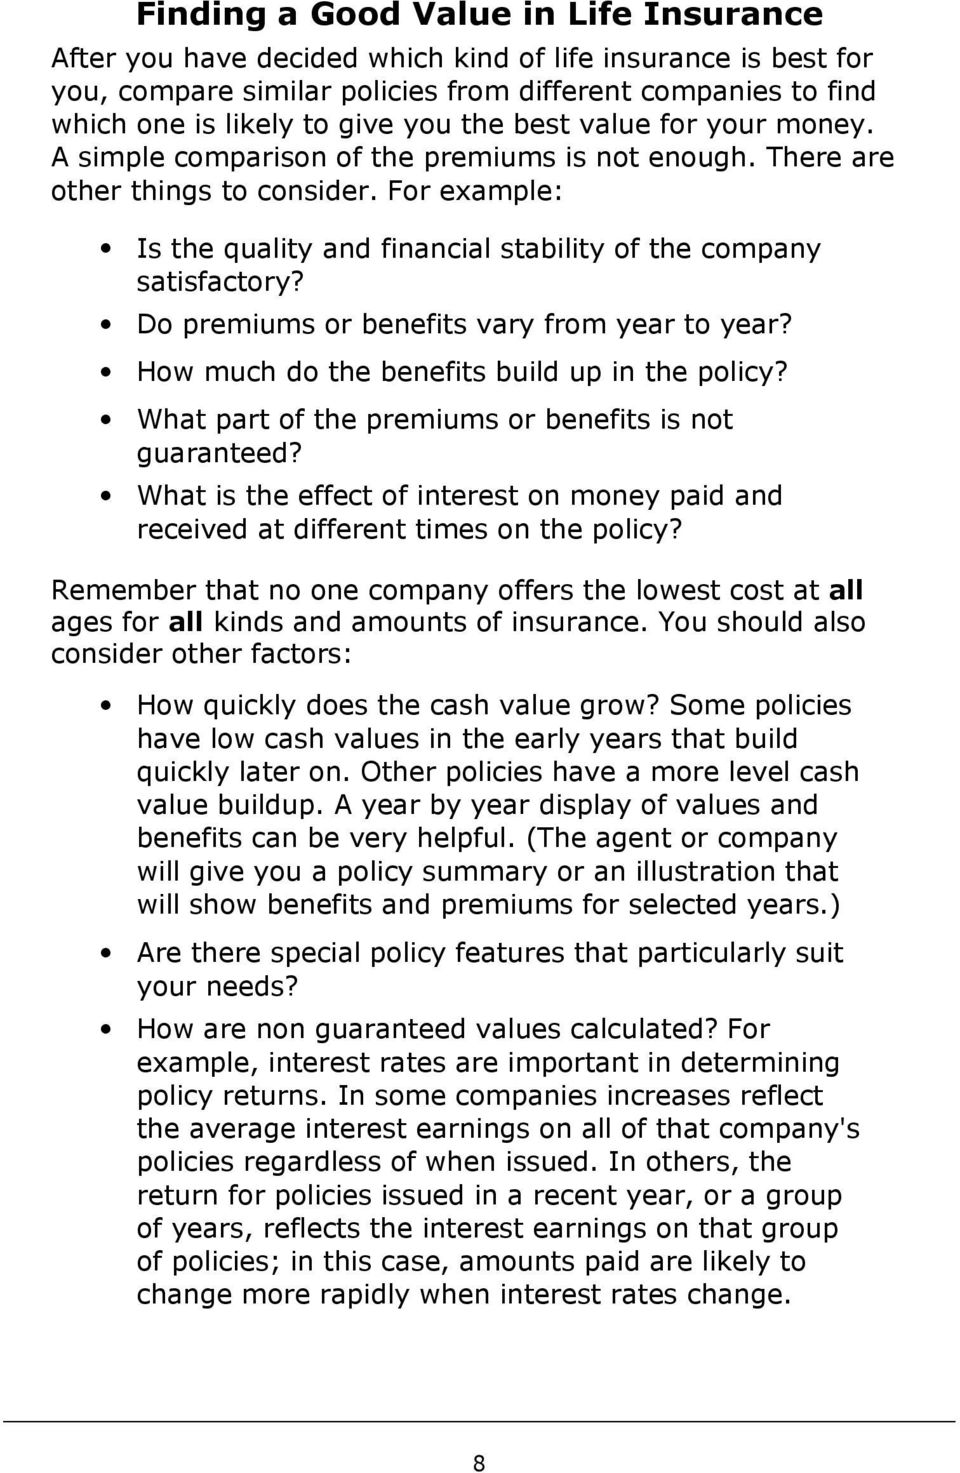 Do premiums or benefits vary from year to year? How much do the benefits build up in the policy? What part of the premiums or benefits is not guaranteed?